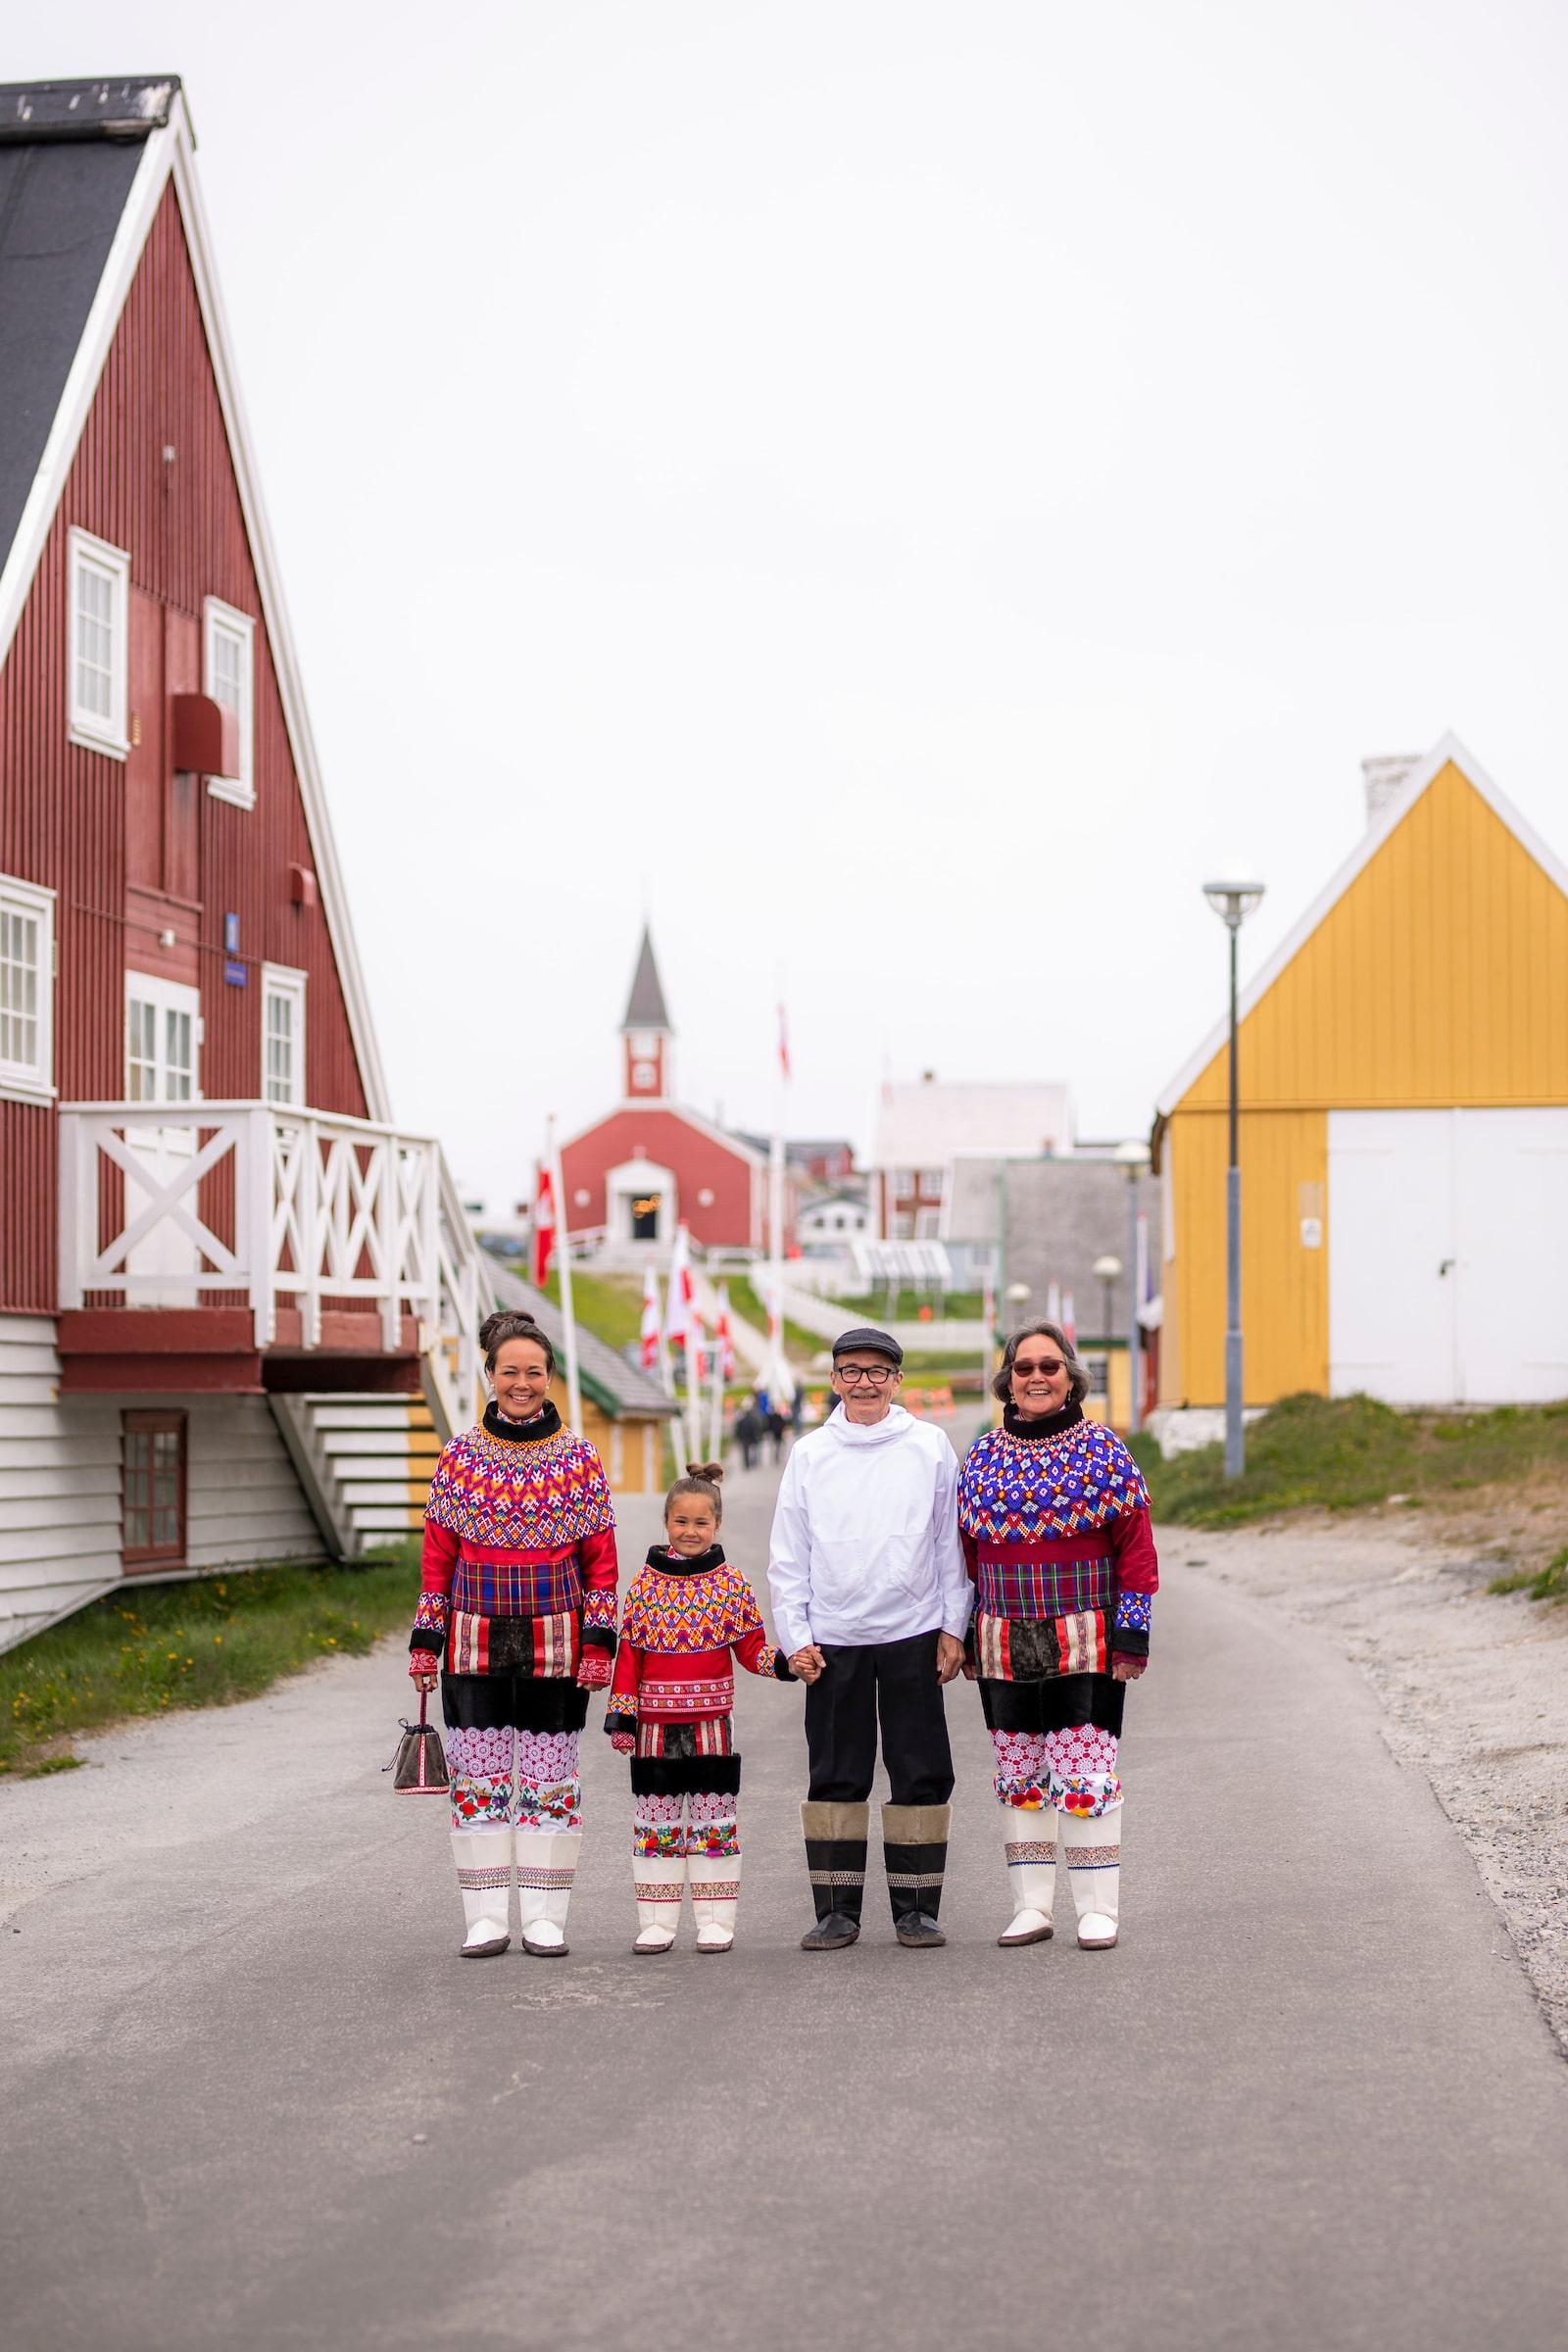 The National Day In Their National Clothings. Photo by Aningaaq R Carlsen - Visit Greenland